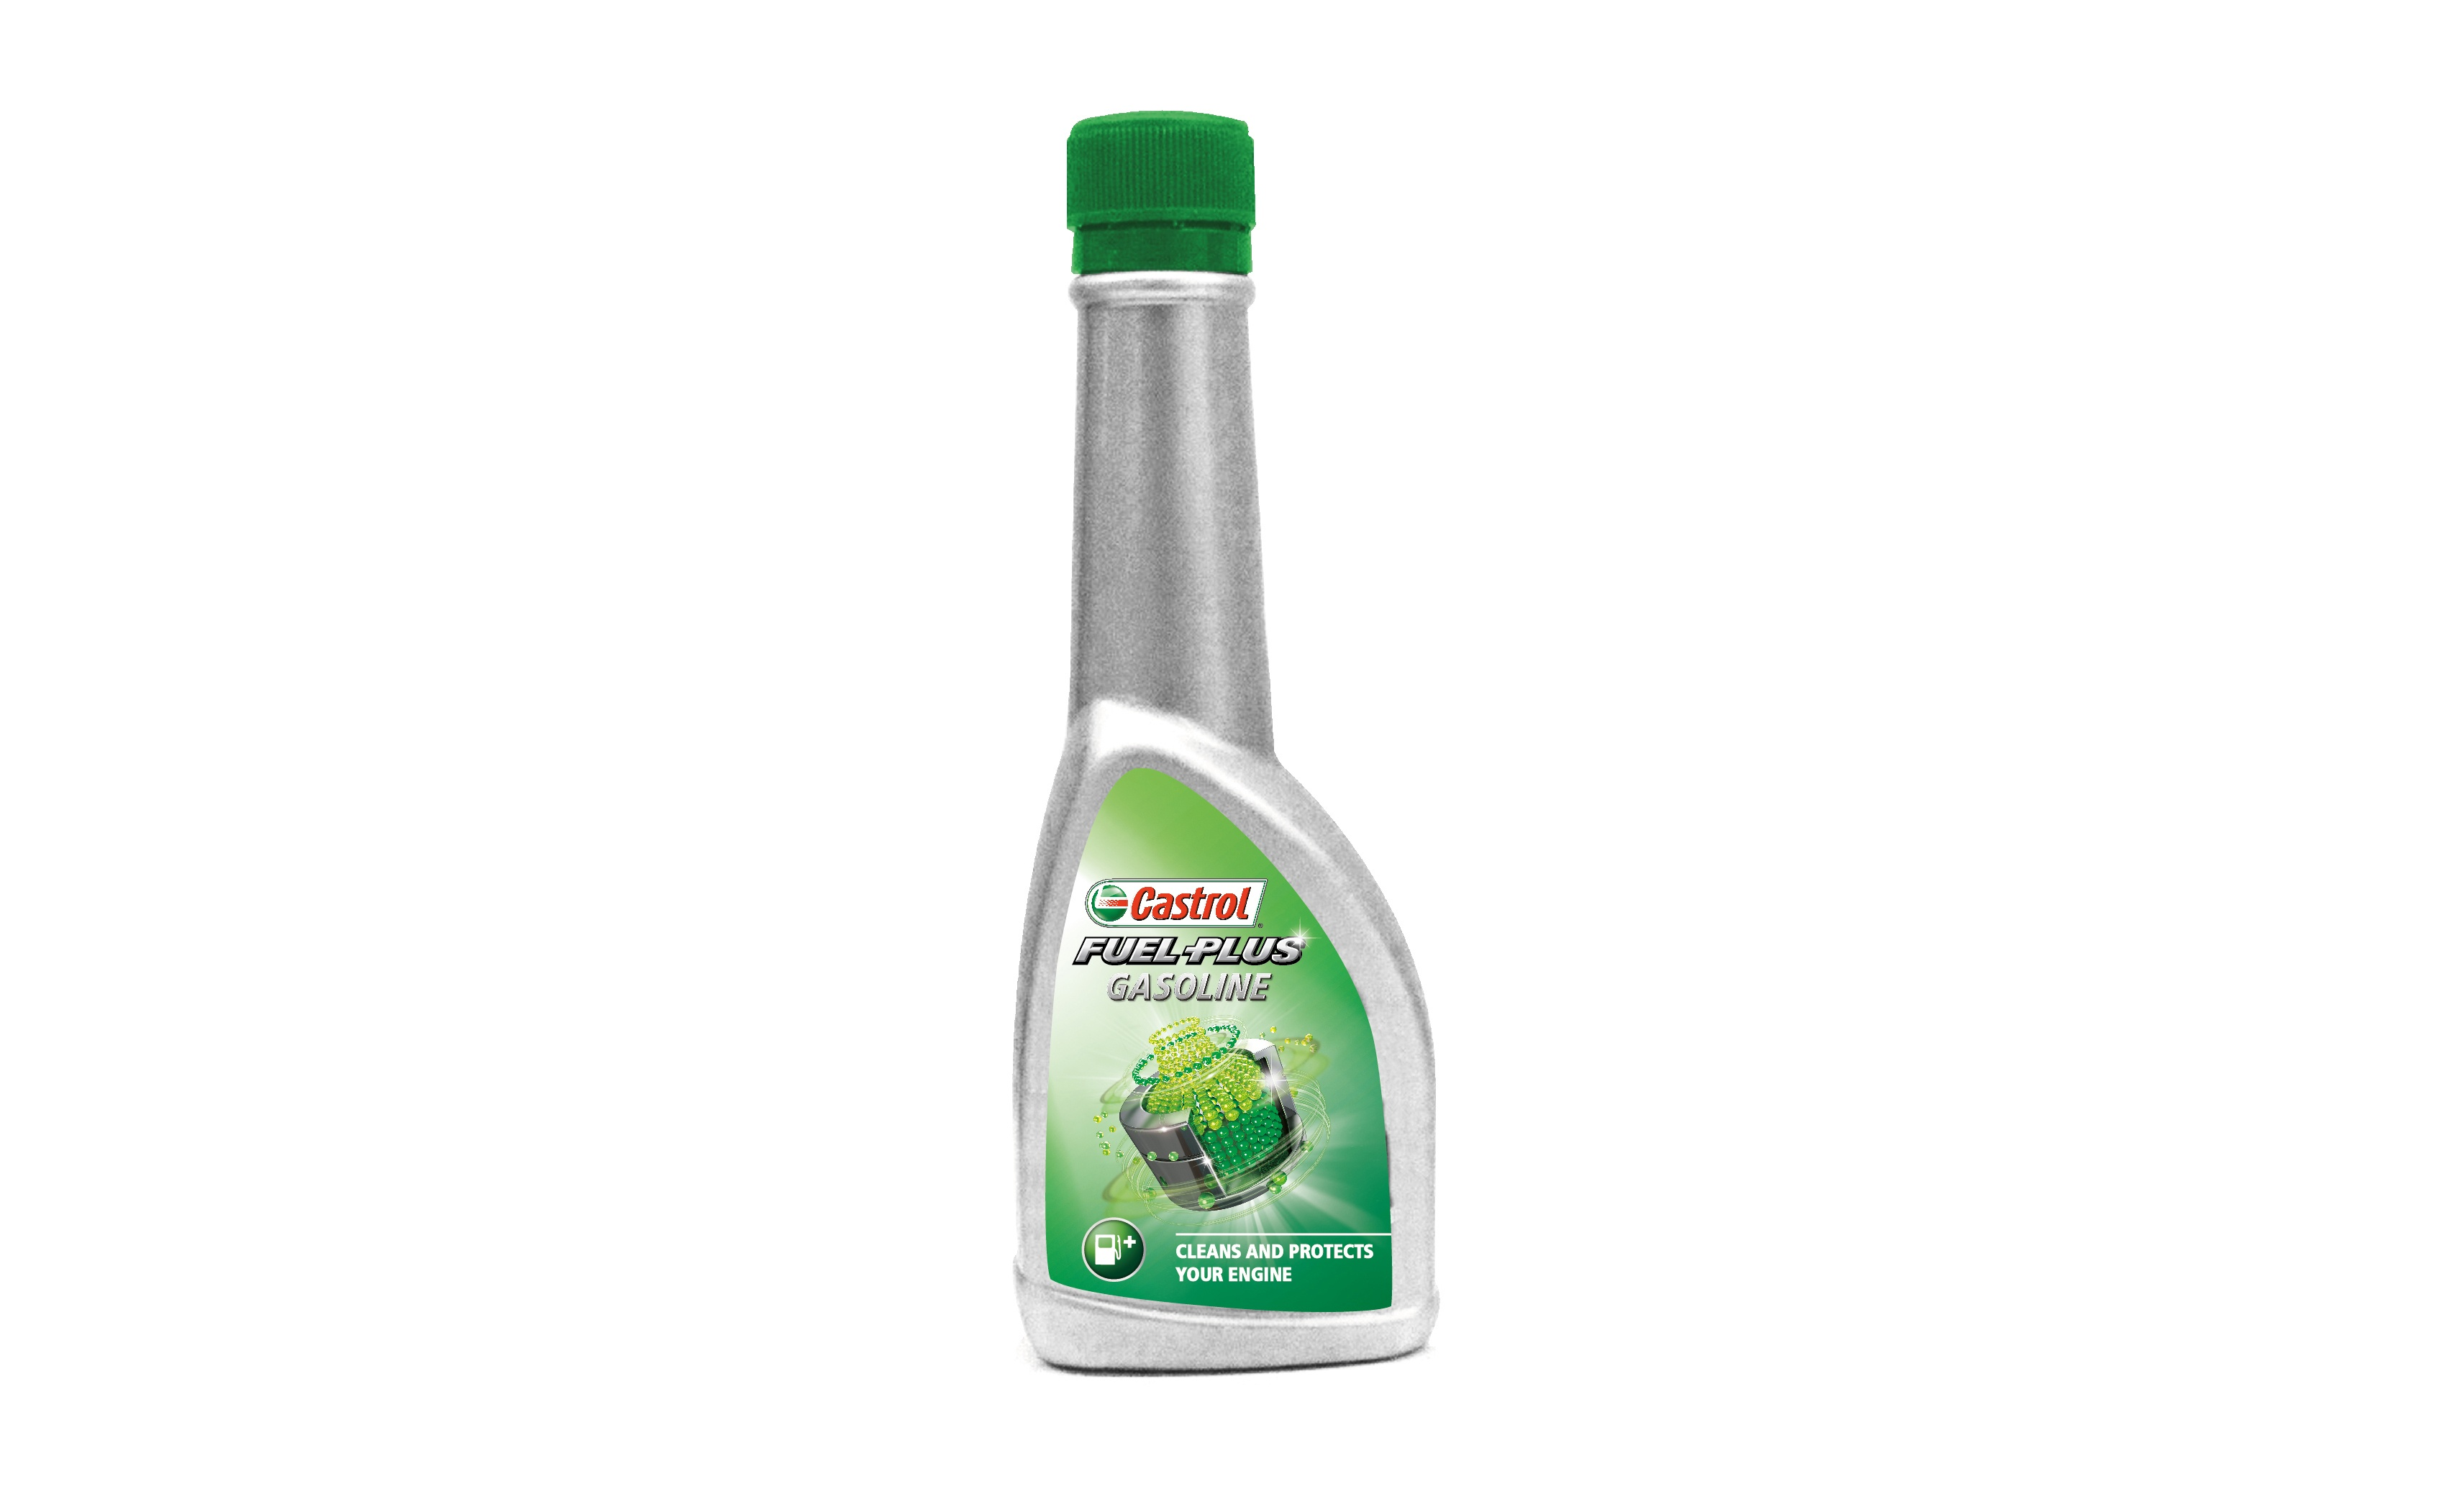 BP-Castrol_FUEL-PLUS_LABELS_50ml